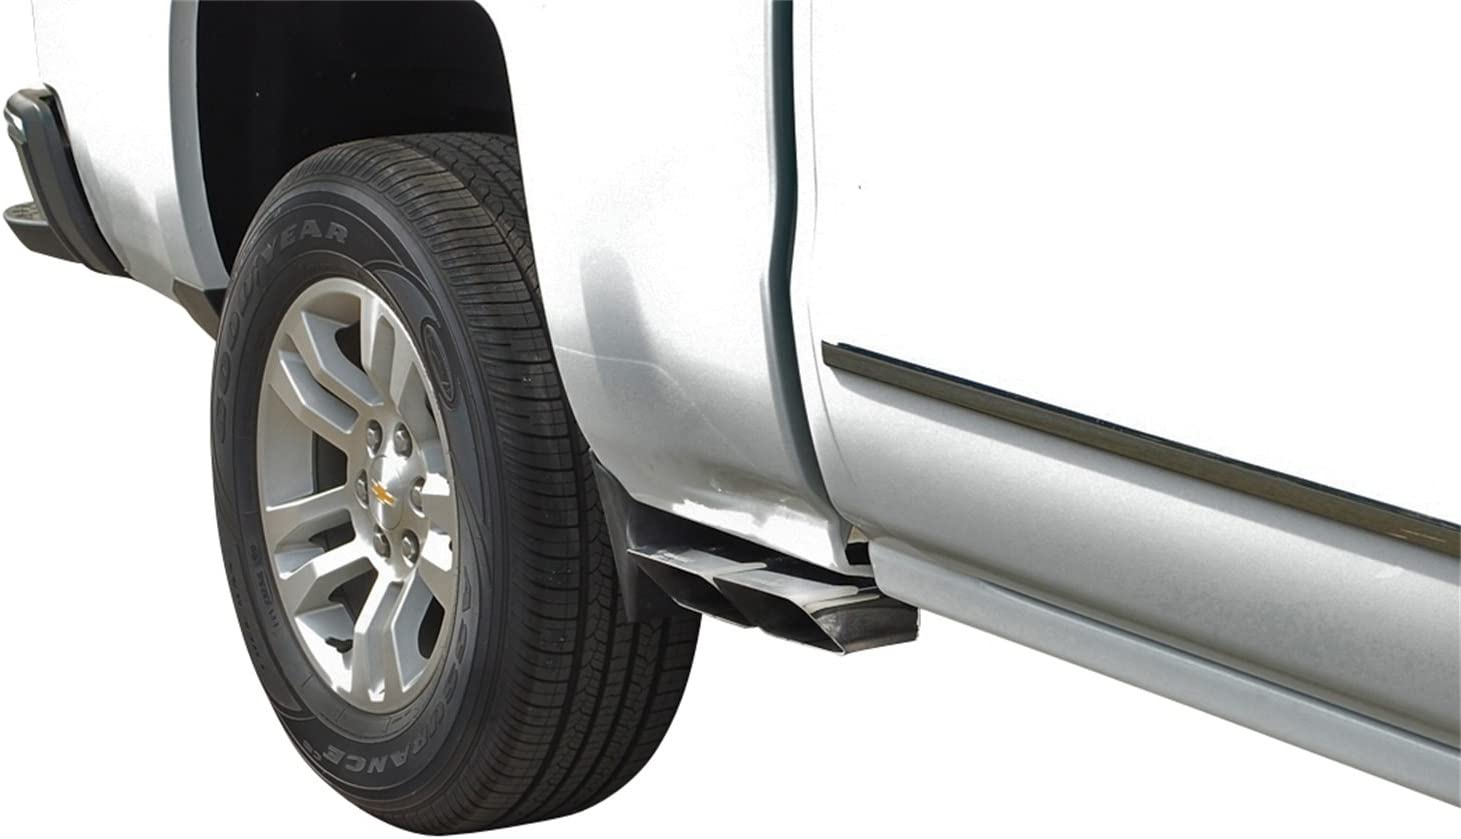 Gibson Performance Exhaust 65659 Stainless Super Truck Cat-Back Performance Exhaust System